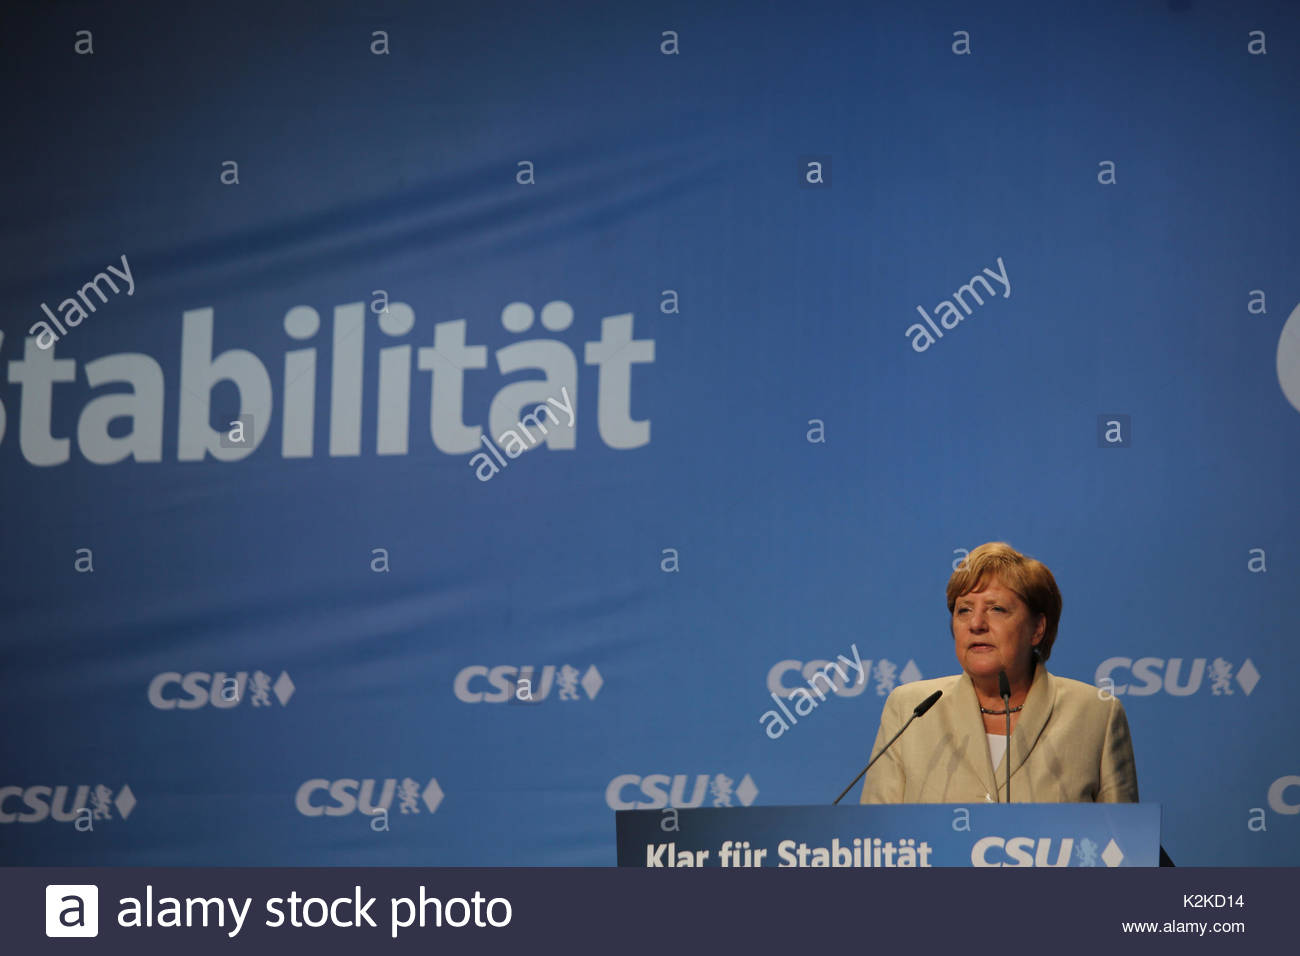 A determined look on Angela Merkel's face as she speaks to a large crowd on the campaign trail in the run up to the German election which is taking place on Sunday, September 24.Merkel spoke for over forty minutes and was well received though a small group of protestors tried to interrupt her speech with whistles and catcalls. - Stock Image